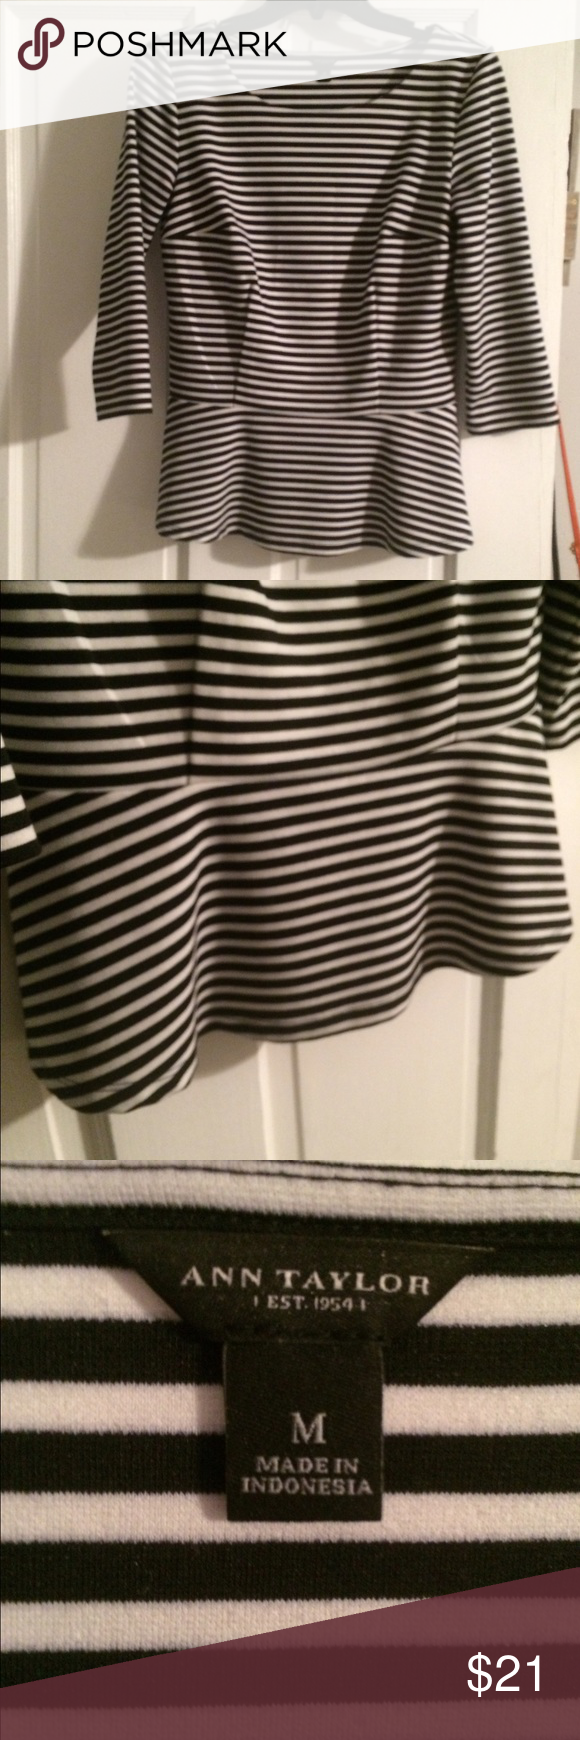 Ann Taylor Stripped Peplum Top Gorgeous peplum top from Ann Taylor. Style is flattering for all body types! Great condition!   Size medium Ann Taylor Tops